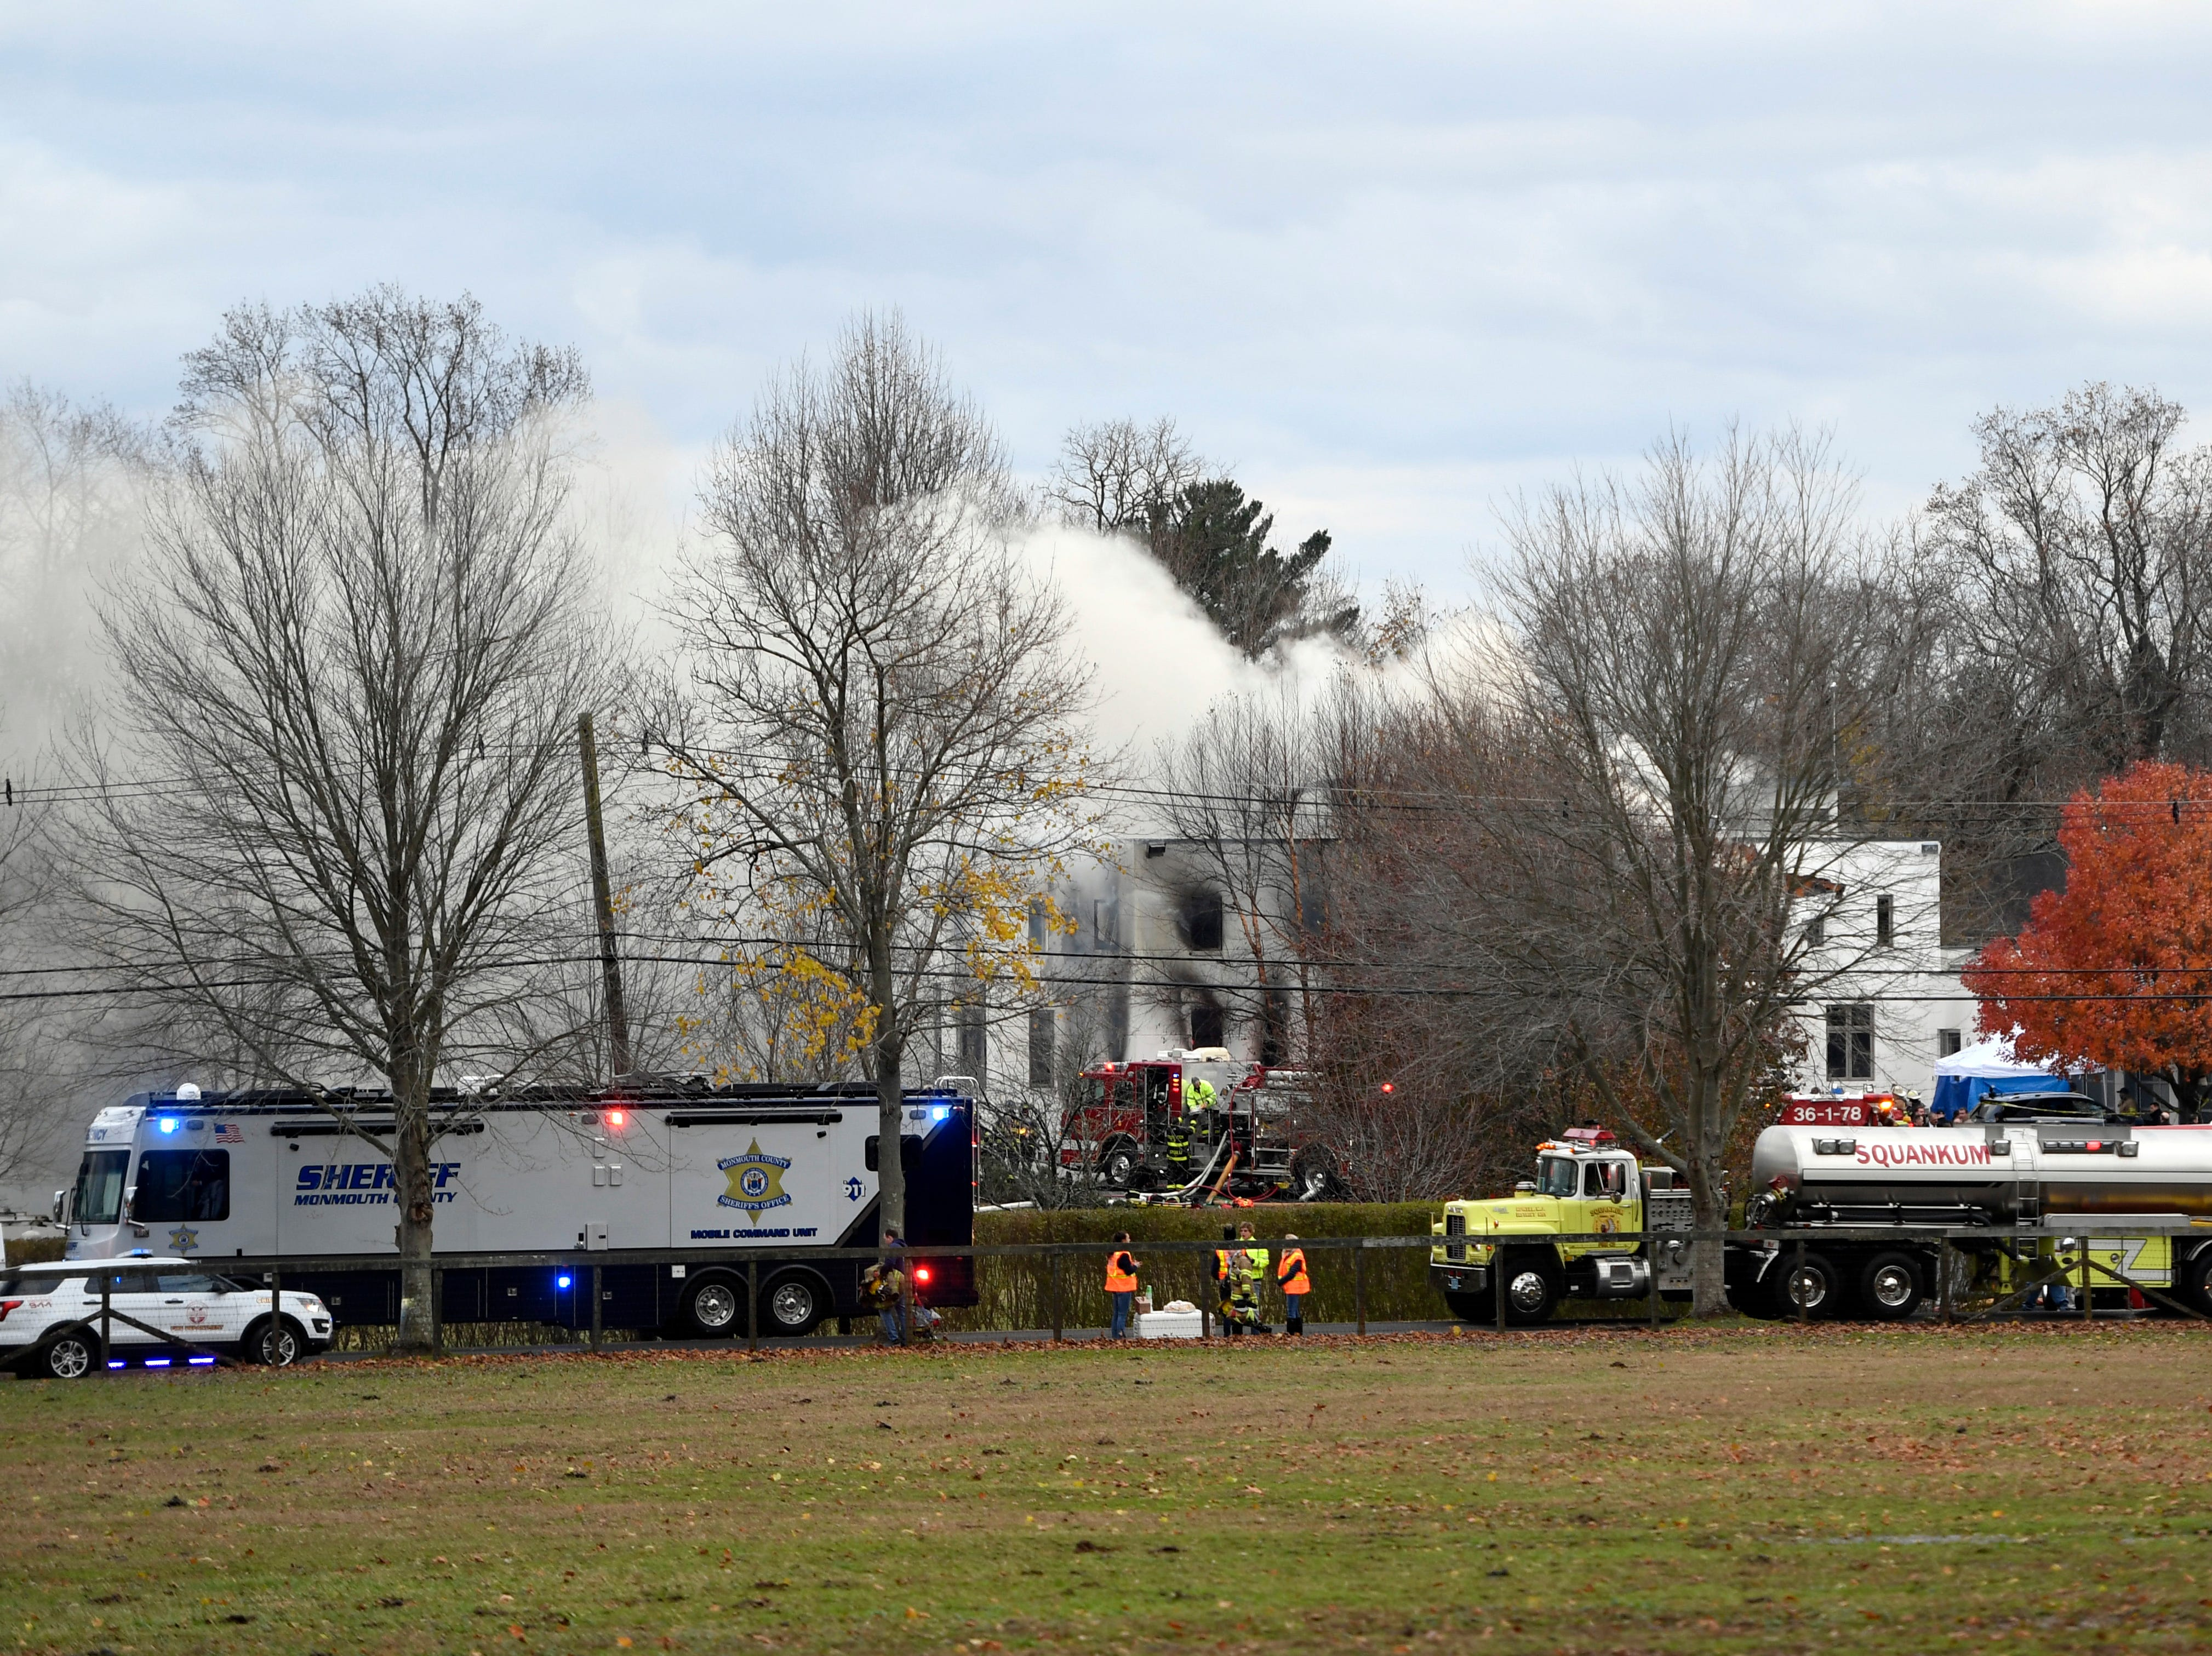 Colts Neck firefighters respond to a house fire off of Willow Brook Road on Tuesday, Nov. 20, 2018, in Colts Neck.